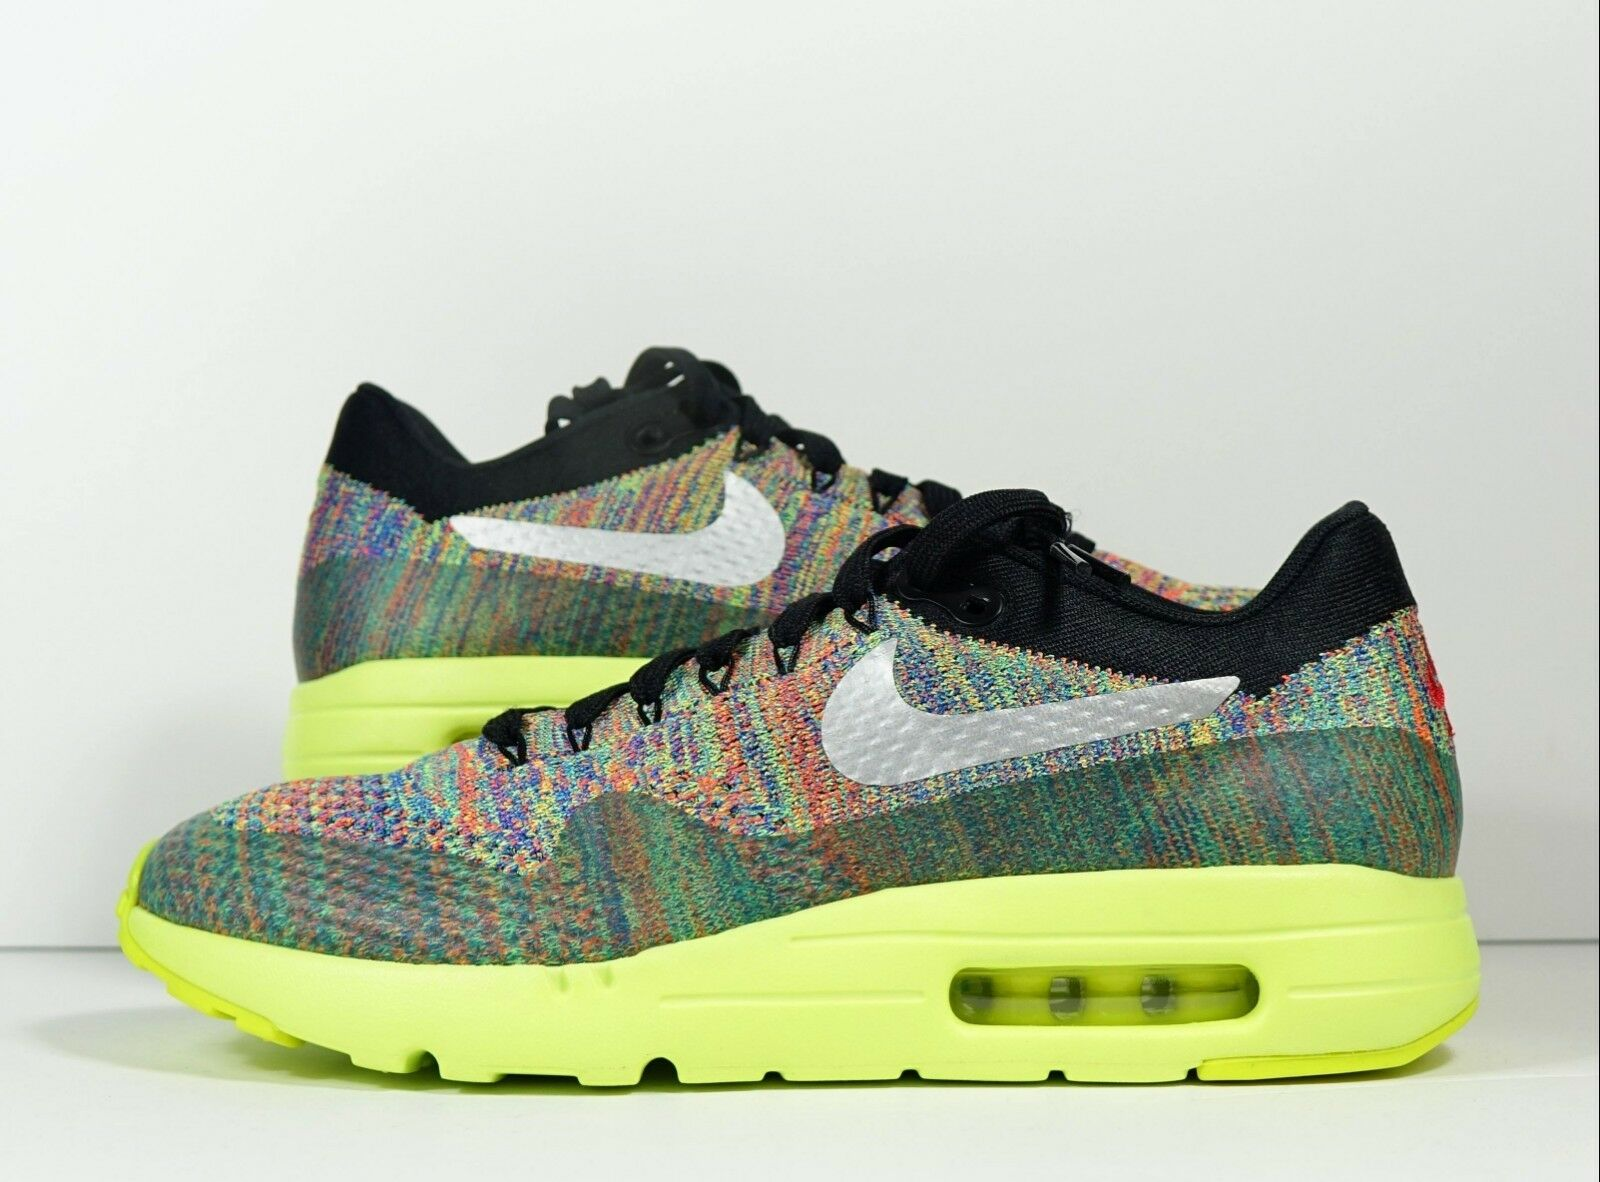 Nike AirMax 1 Ultra Flyknit AirMax Day 3 26 Multicolor Volt Sz 8.5